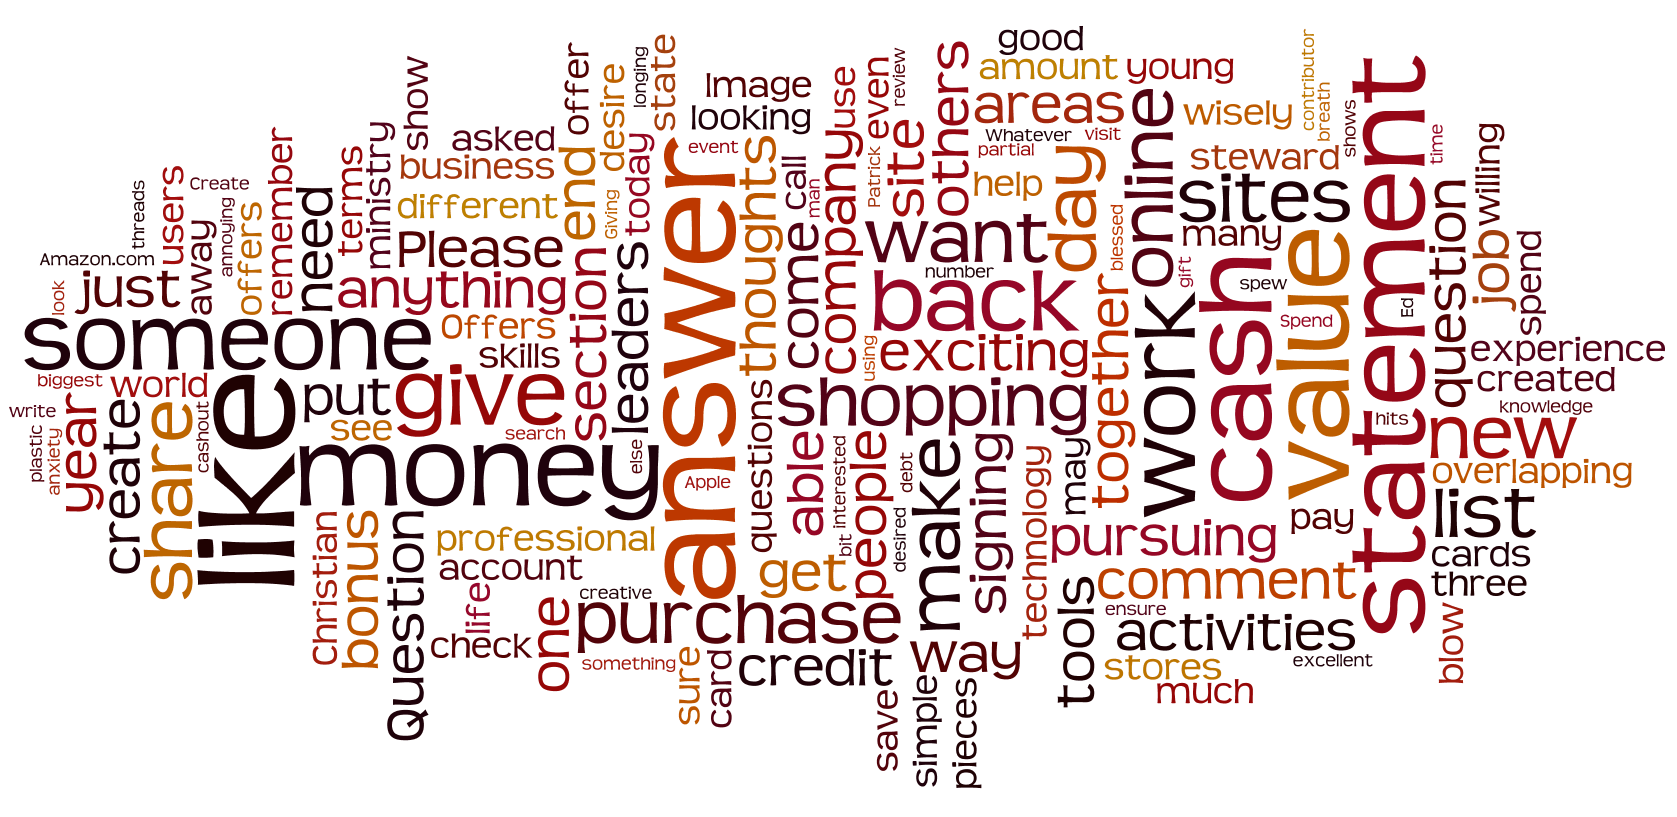 Image from Wordle.net